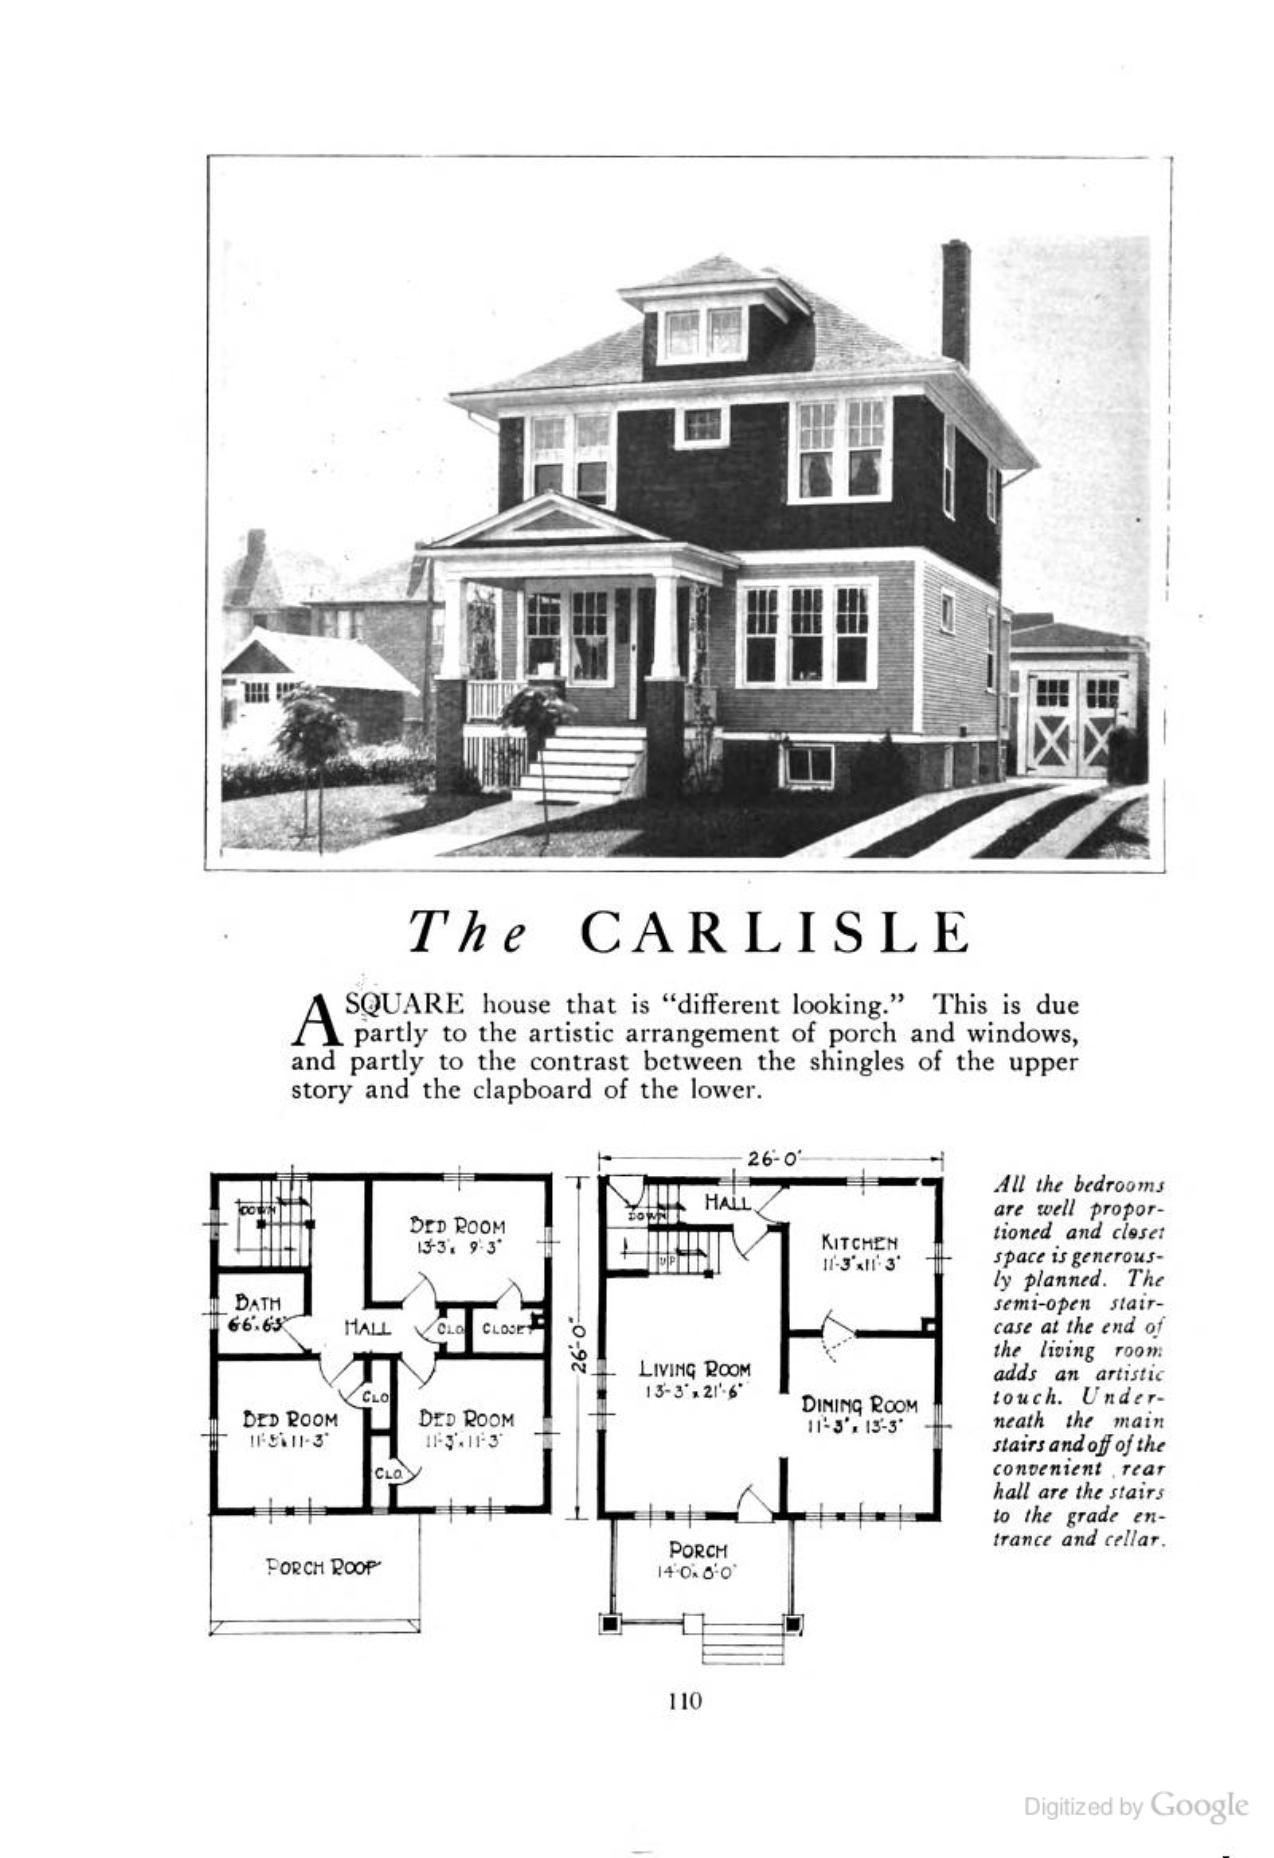 Four Squar House Design Of 1900s: The Carlisle (an American Foursquare Kit House/house Plan